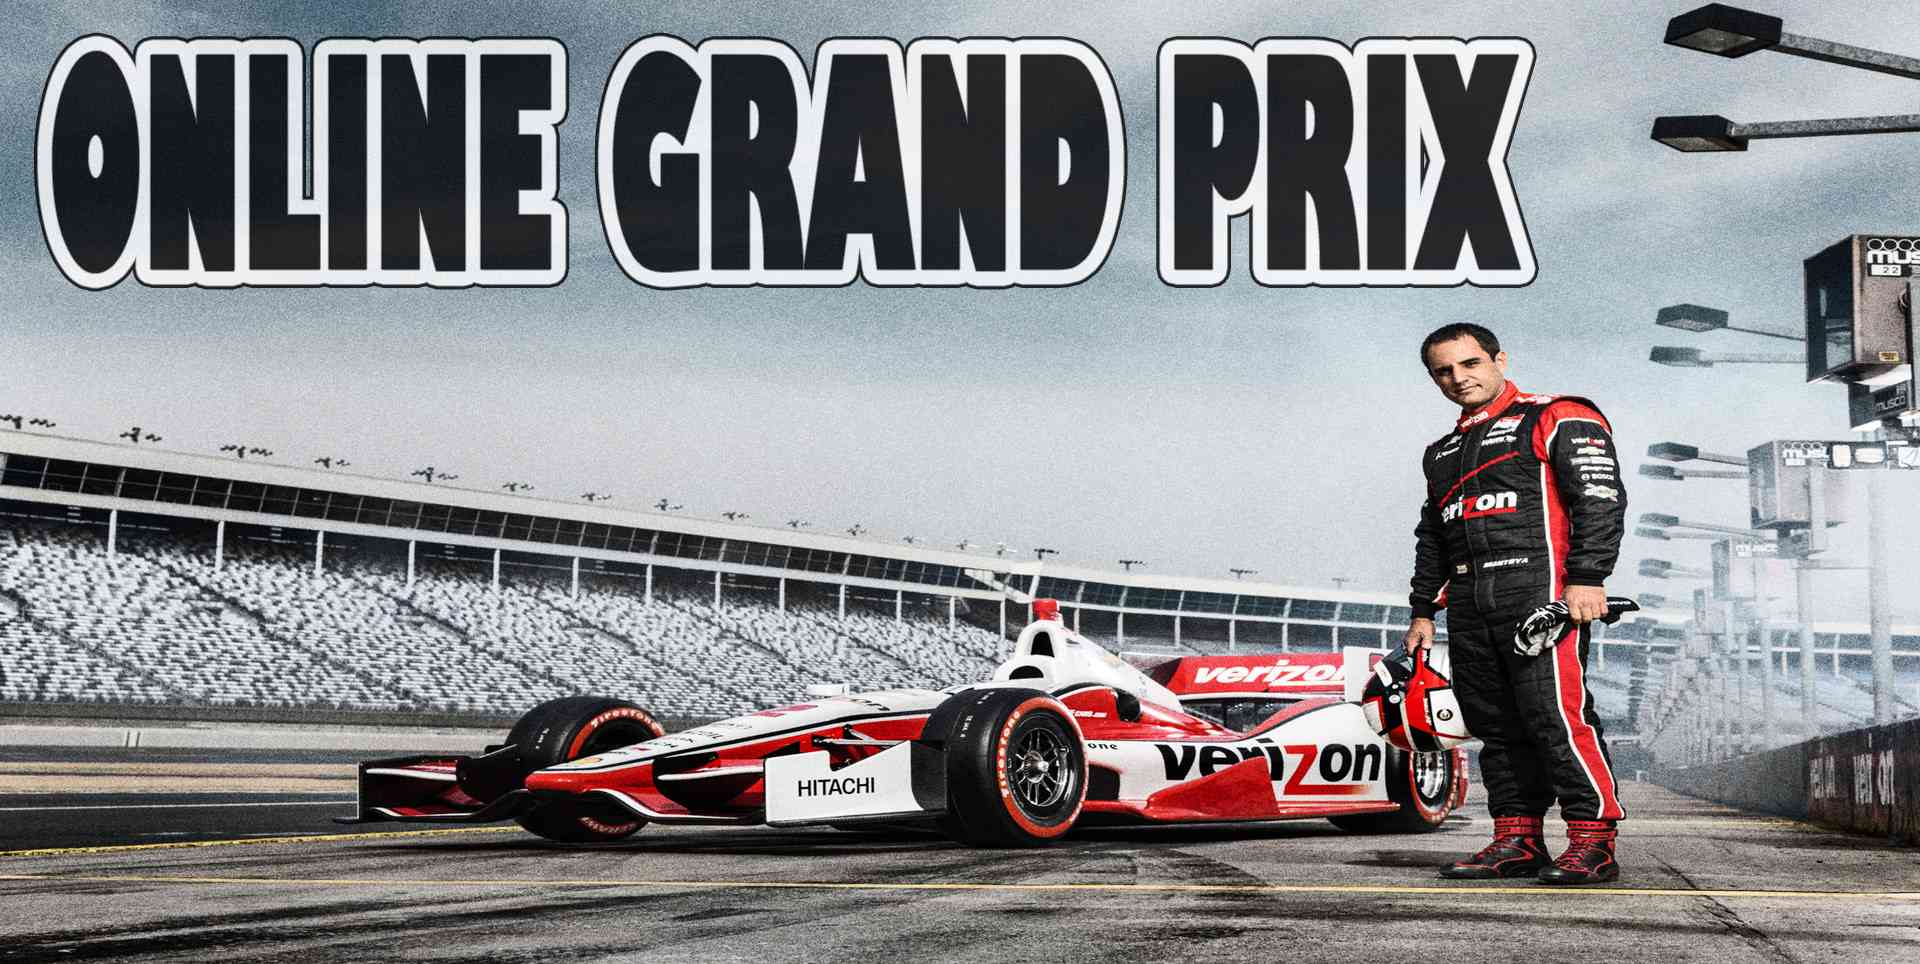 2015 Indianapolis Grand Prix Online Broadcast